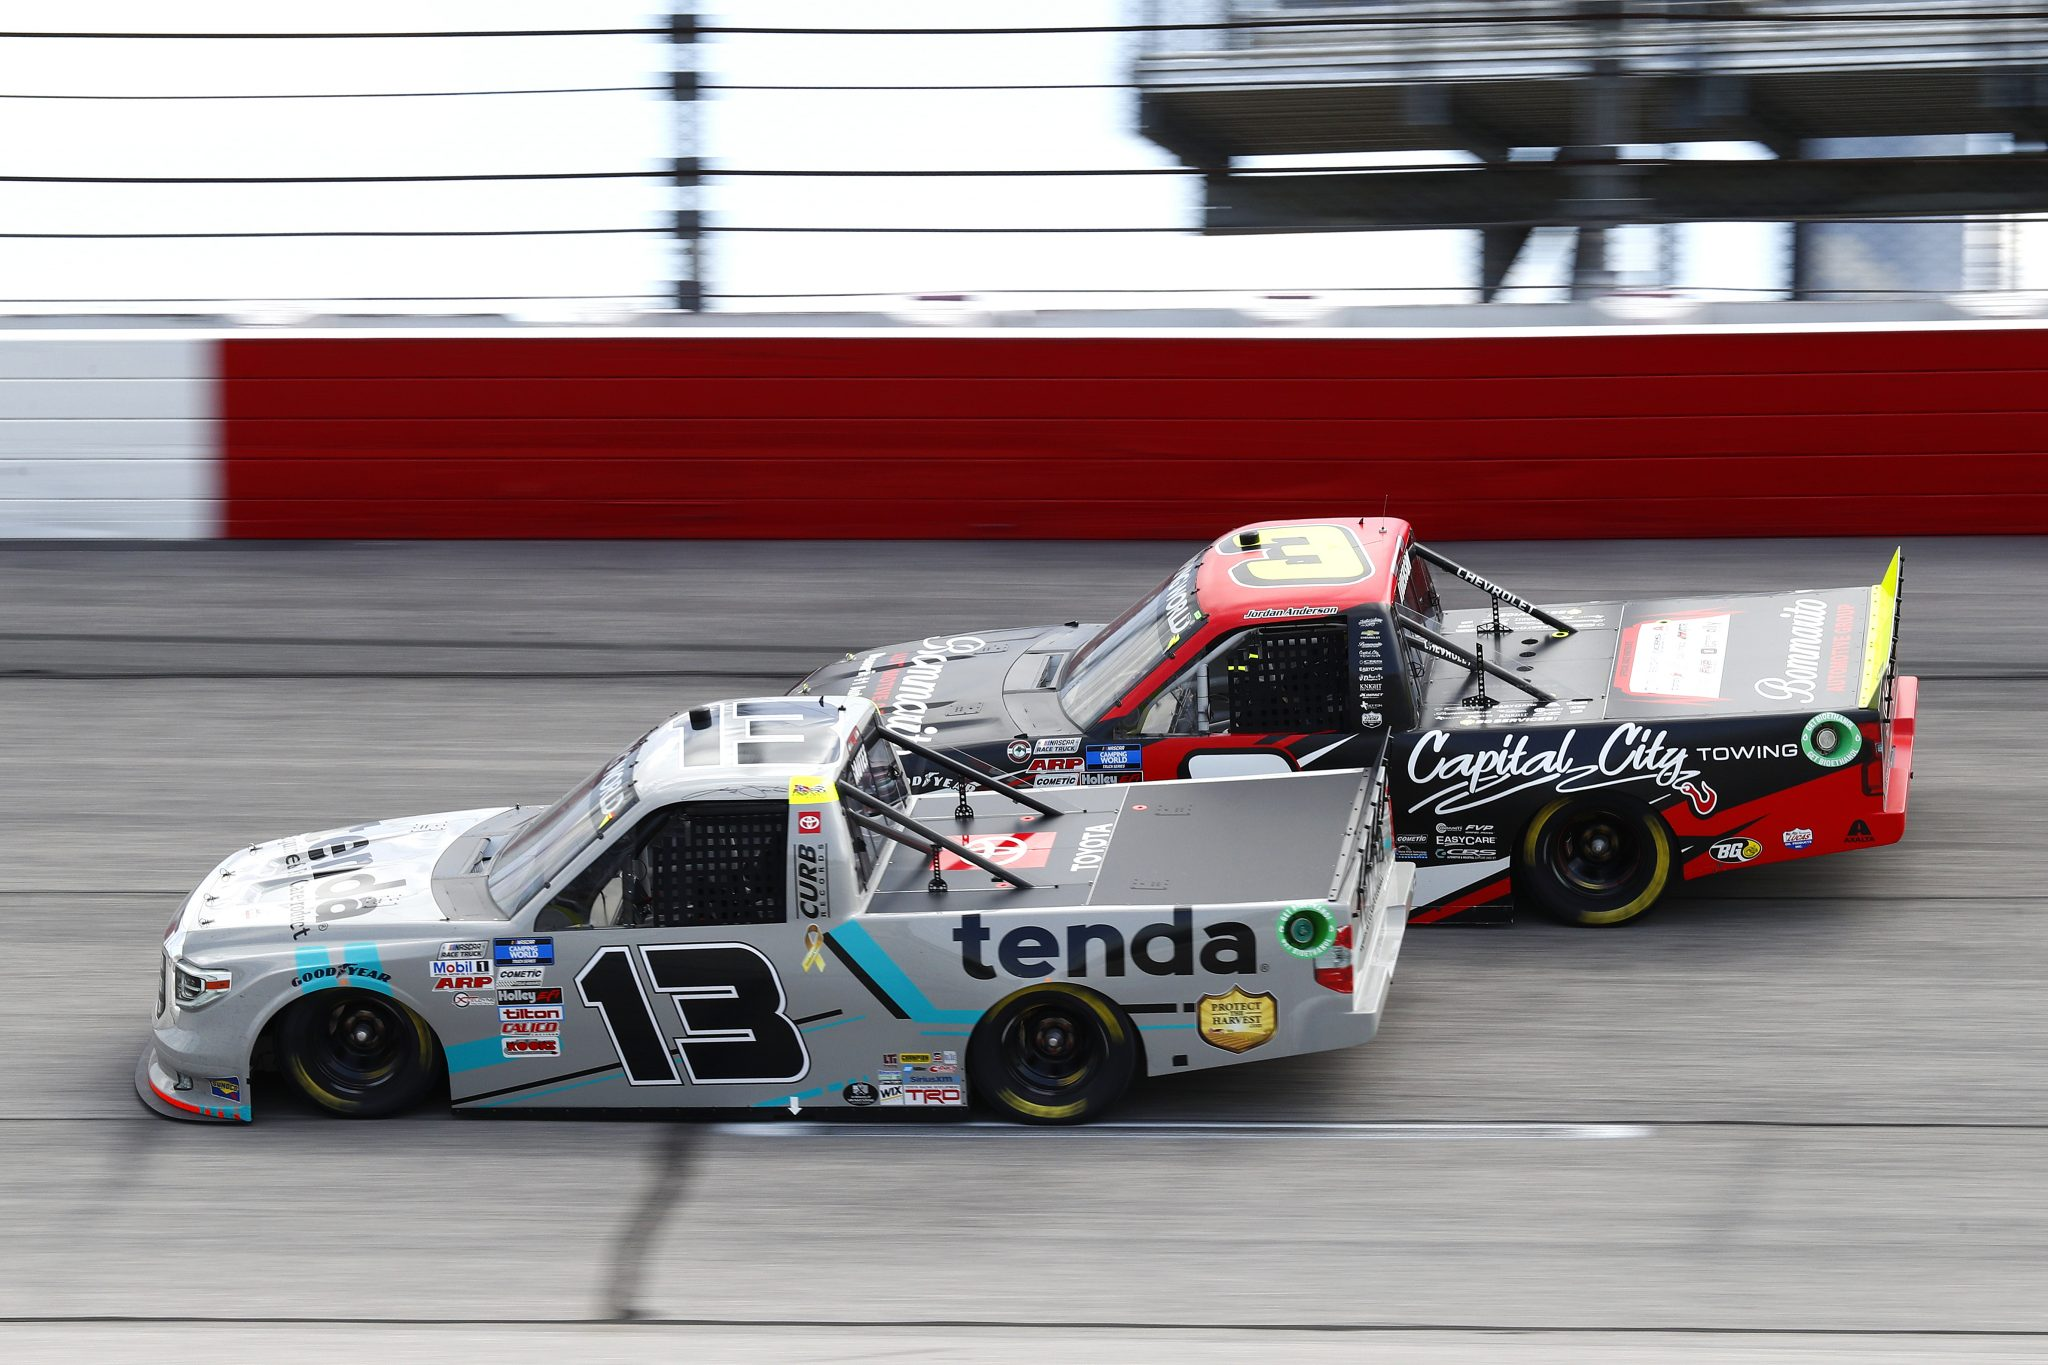 DARLINGTON, SOUTH CAROLINA - SEPTEMBER 05: Johnny Sauter, driver of the #13 Tenda Equine & Pet Care Products Toyota, and Jordan Anderson, driver of the #3 Bommarito.com/Capital City Towing Chevrolet, race during the NASCAR Camping World Truck Series In It To Win It 200 at Darlington Raceway on September 05, 2021 in Darlington, South Carolina. (Photo by Jared East/Getty Images)   Getty Images